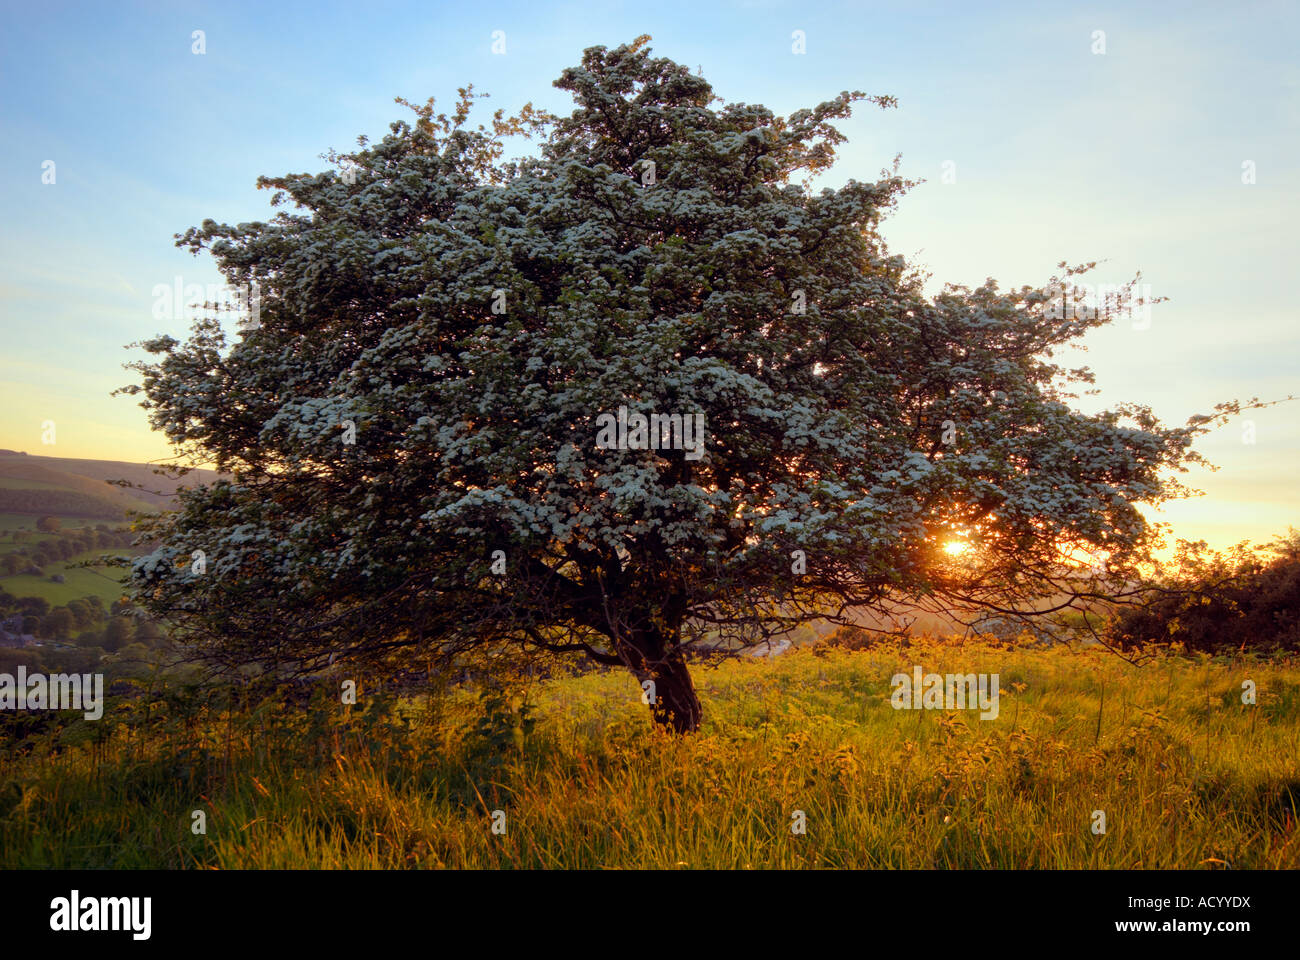 Hawthorn tree in flower at sunset in Derbyshire 'Great Britain' - Stock Image